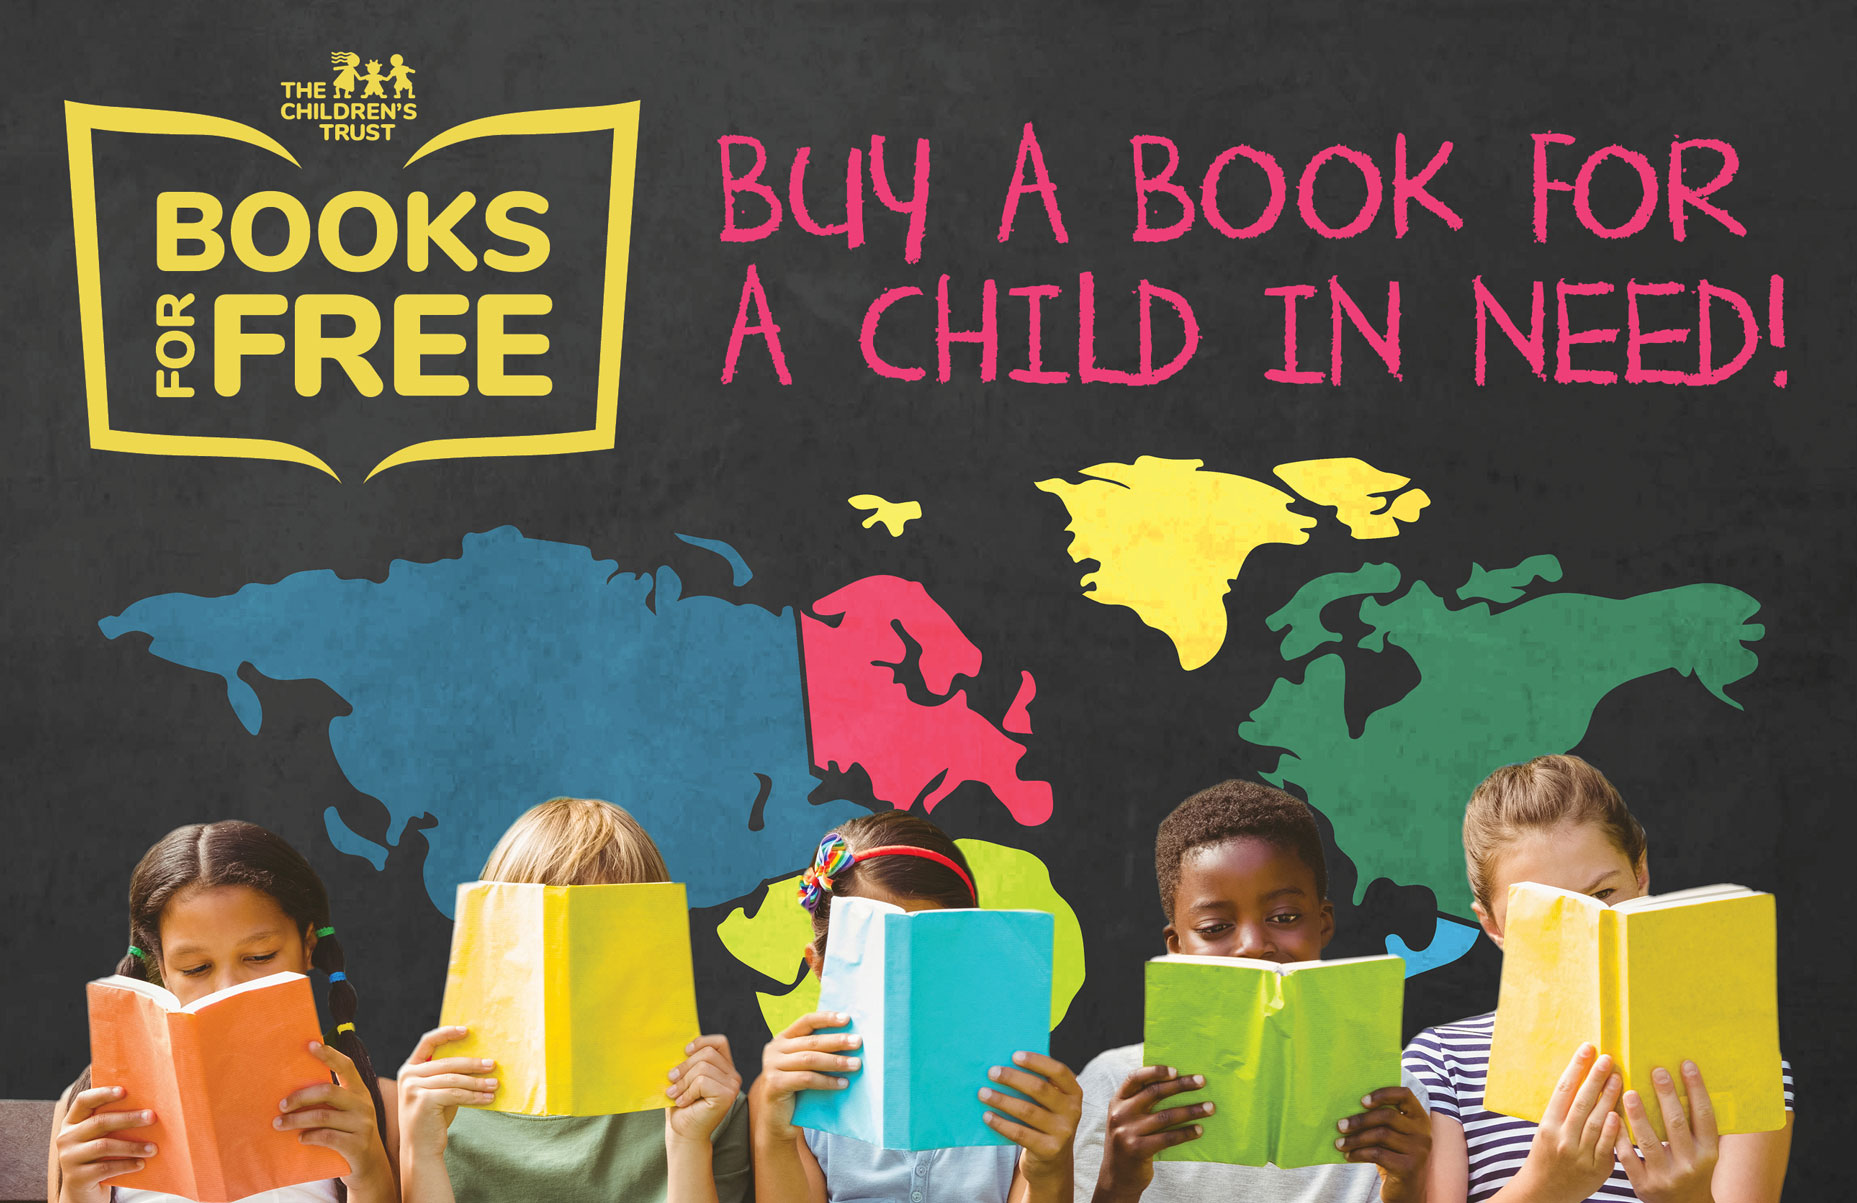 Buy a Book for a Child in Need